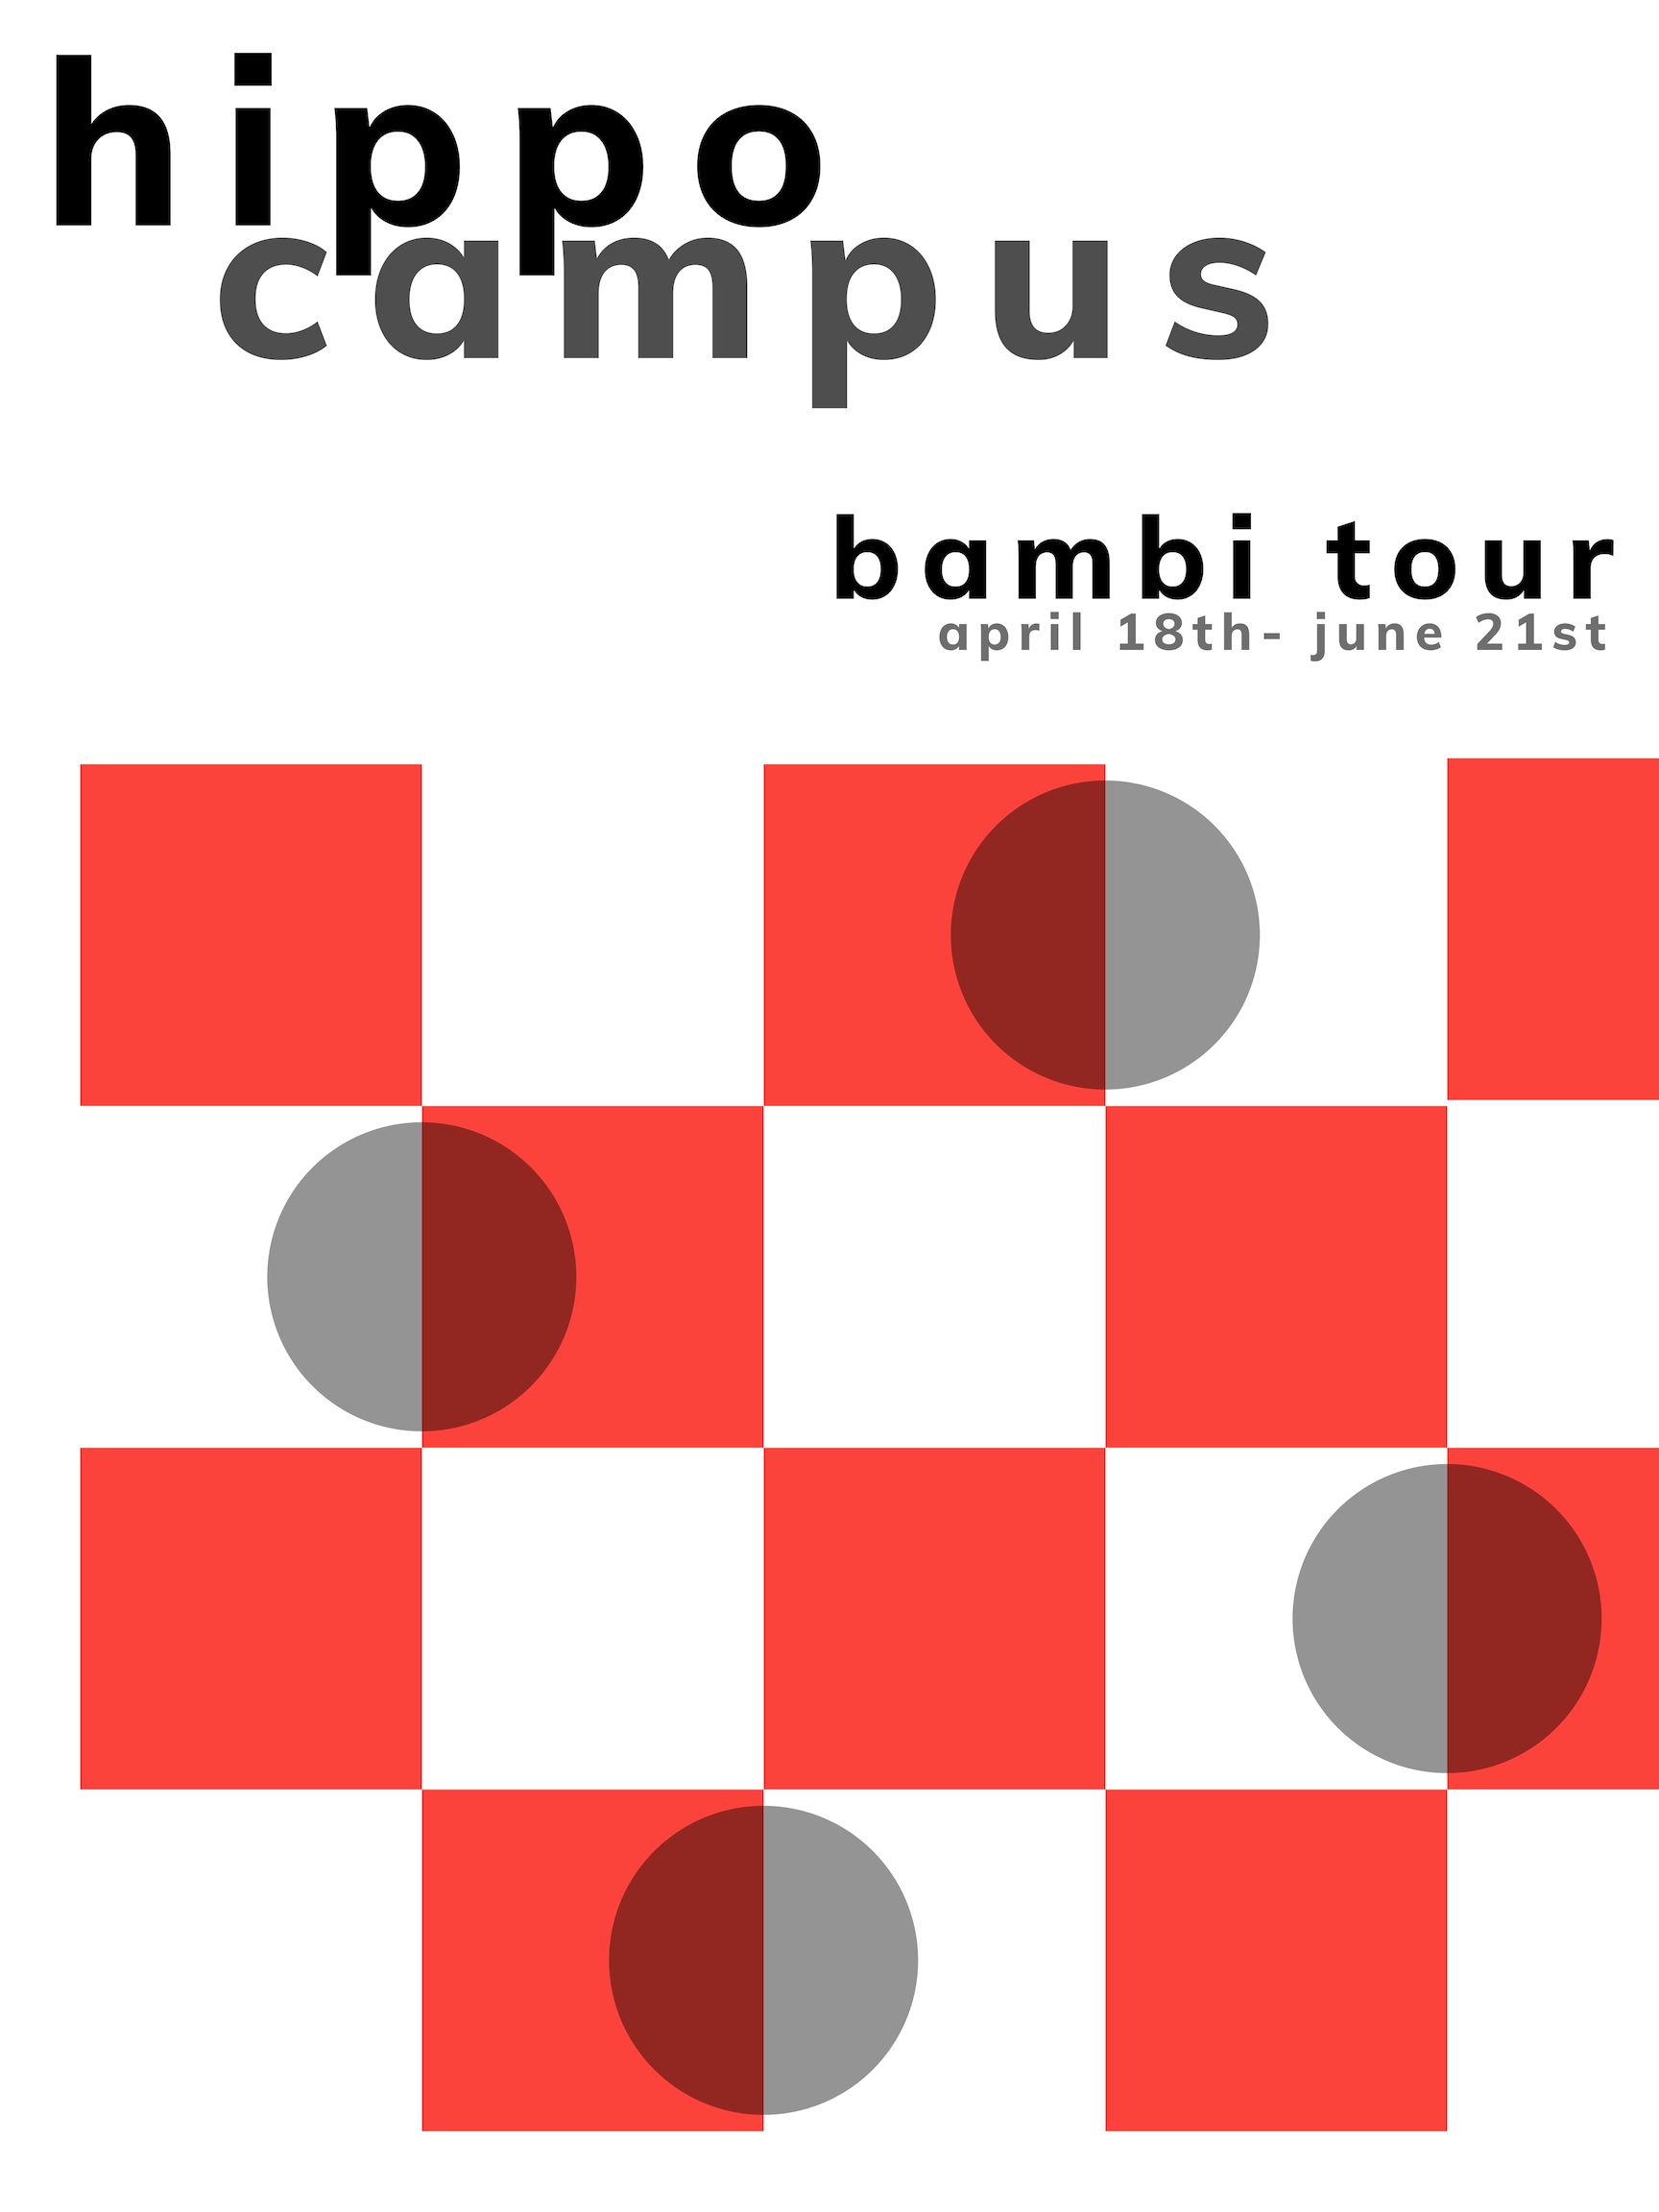 hippo campus bambi.png